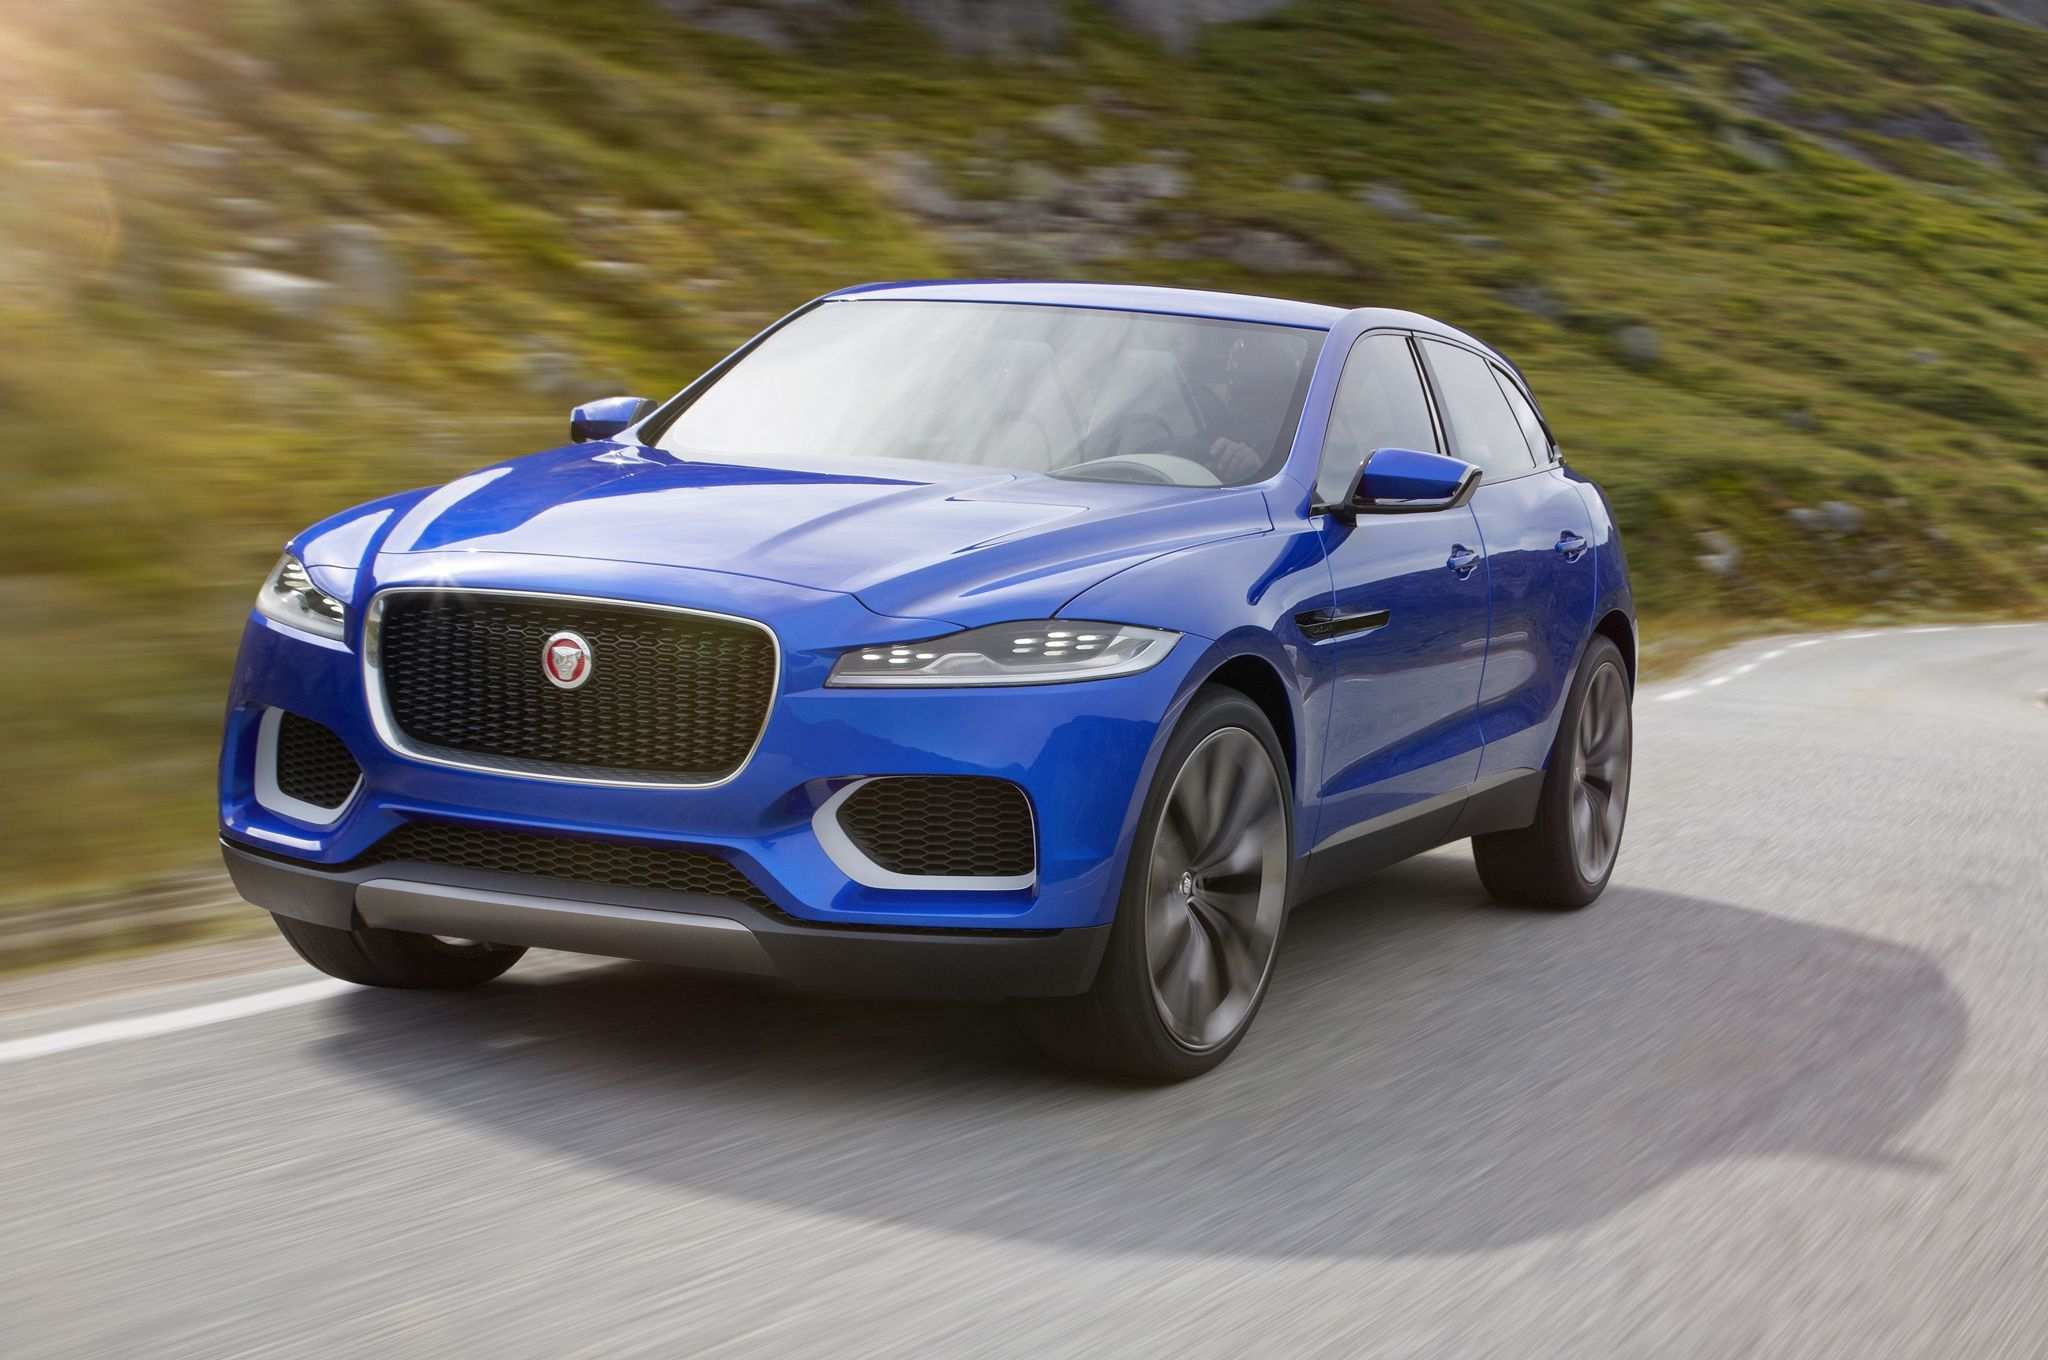 93 All New 2020 Jaguar C X17 Crossover Concept